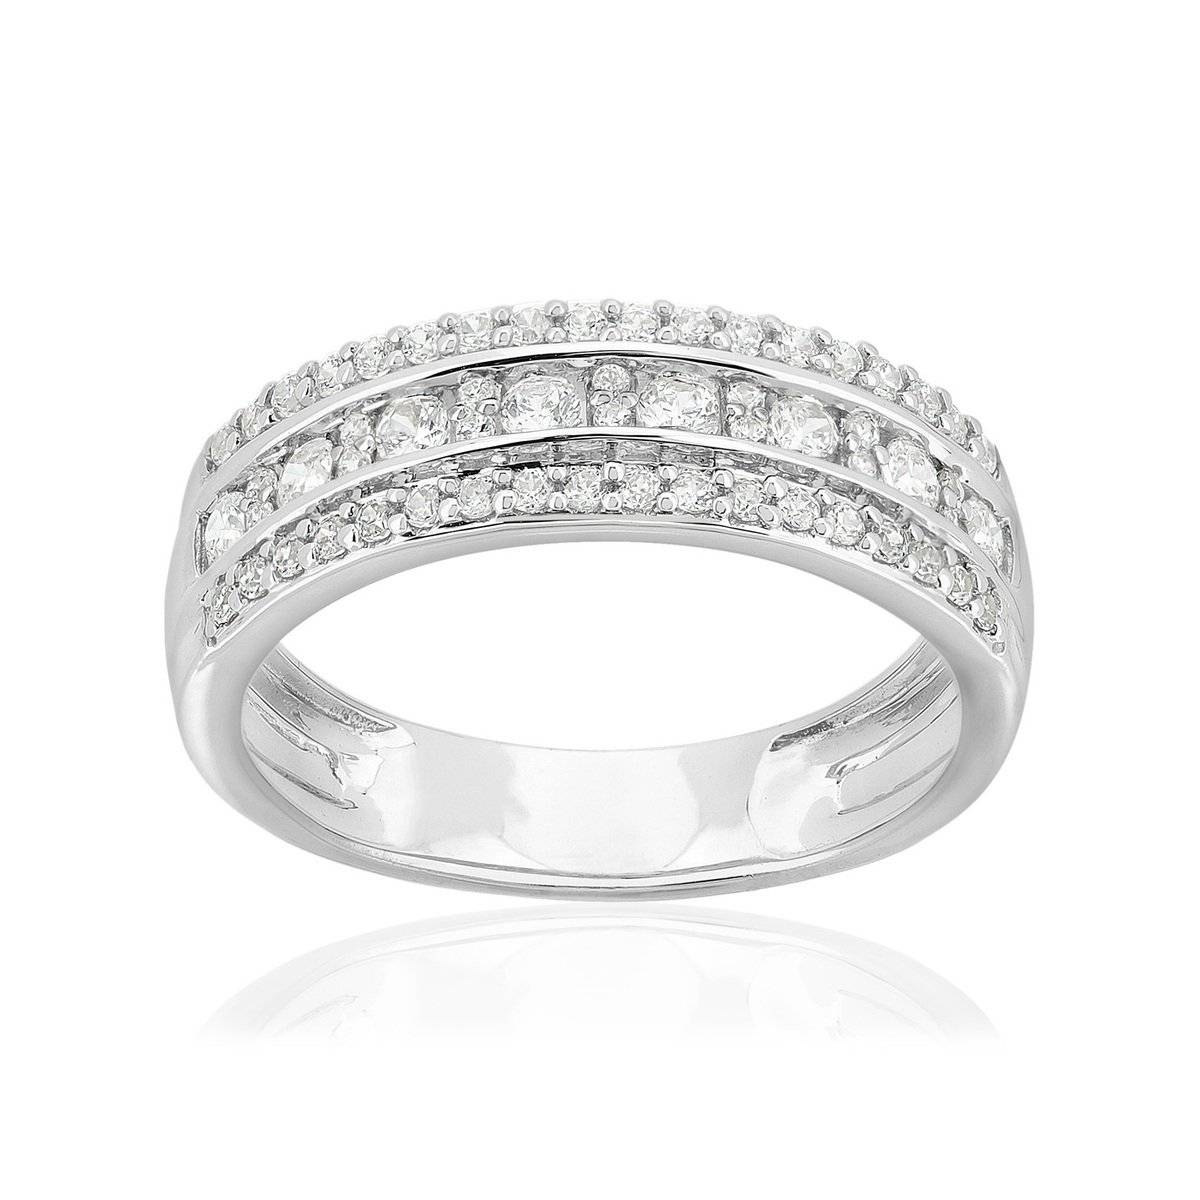 MATY Bague or 750 blanc diamants synthétiques 0,5 carat- MATY